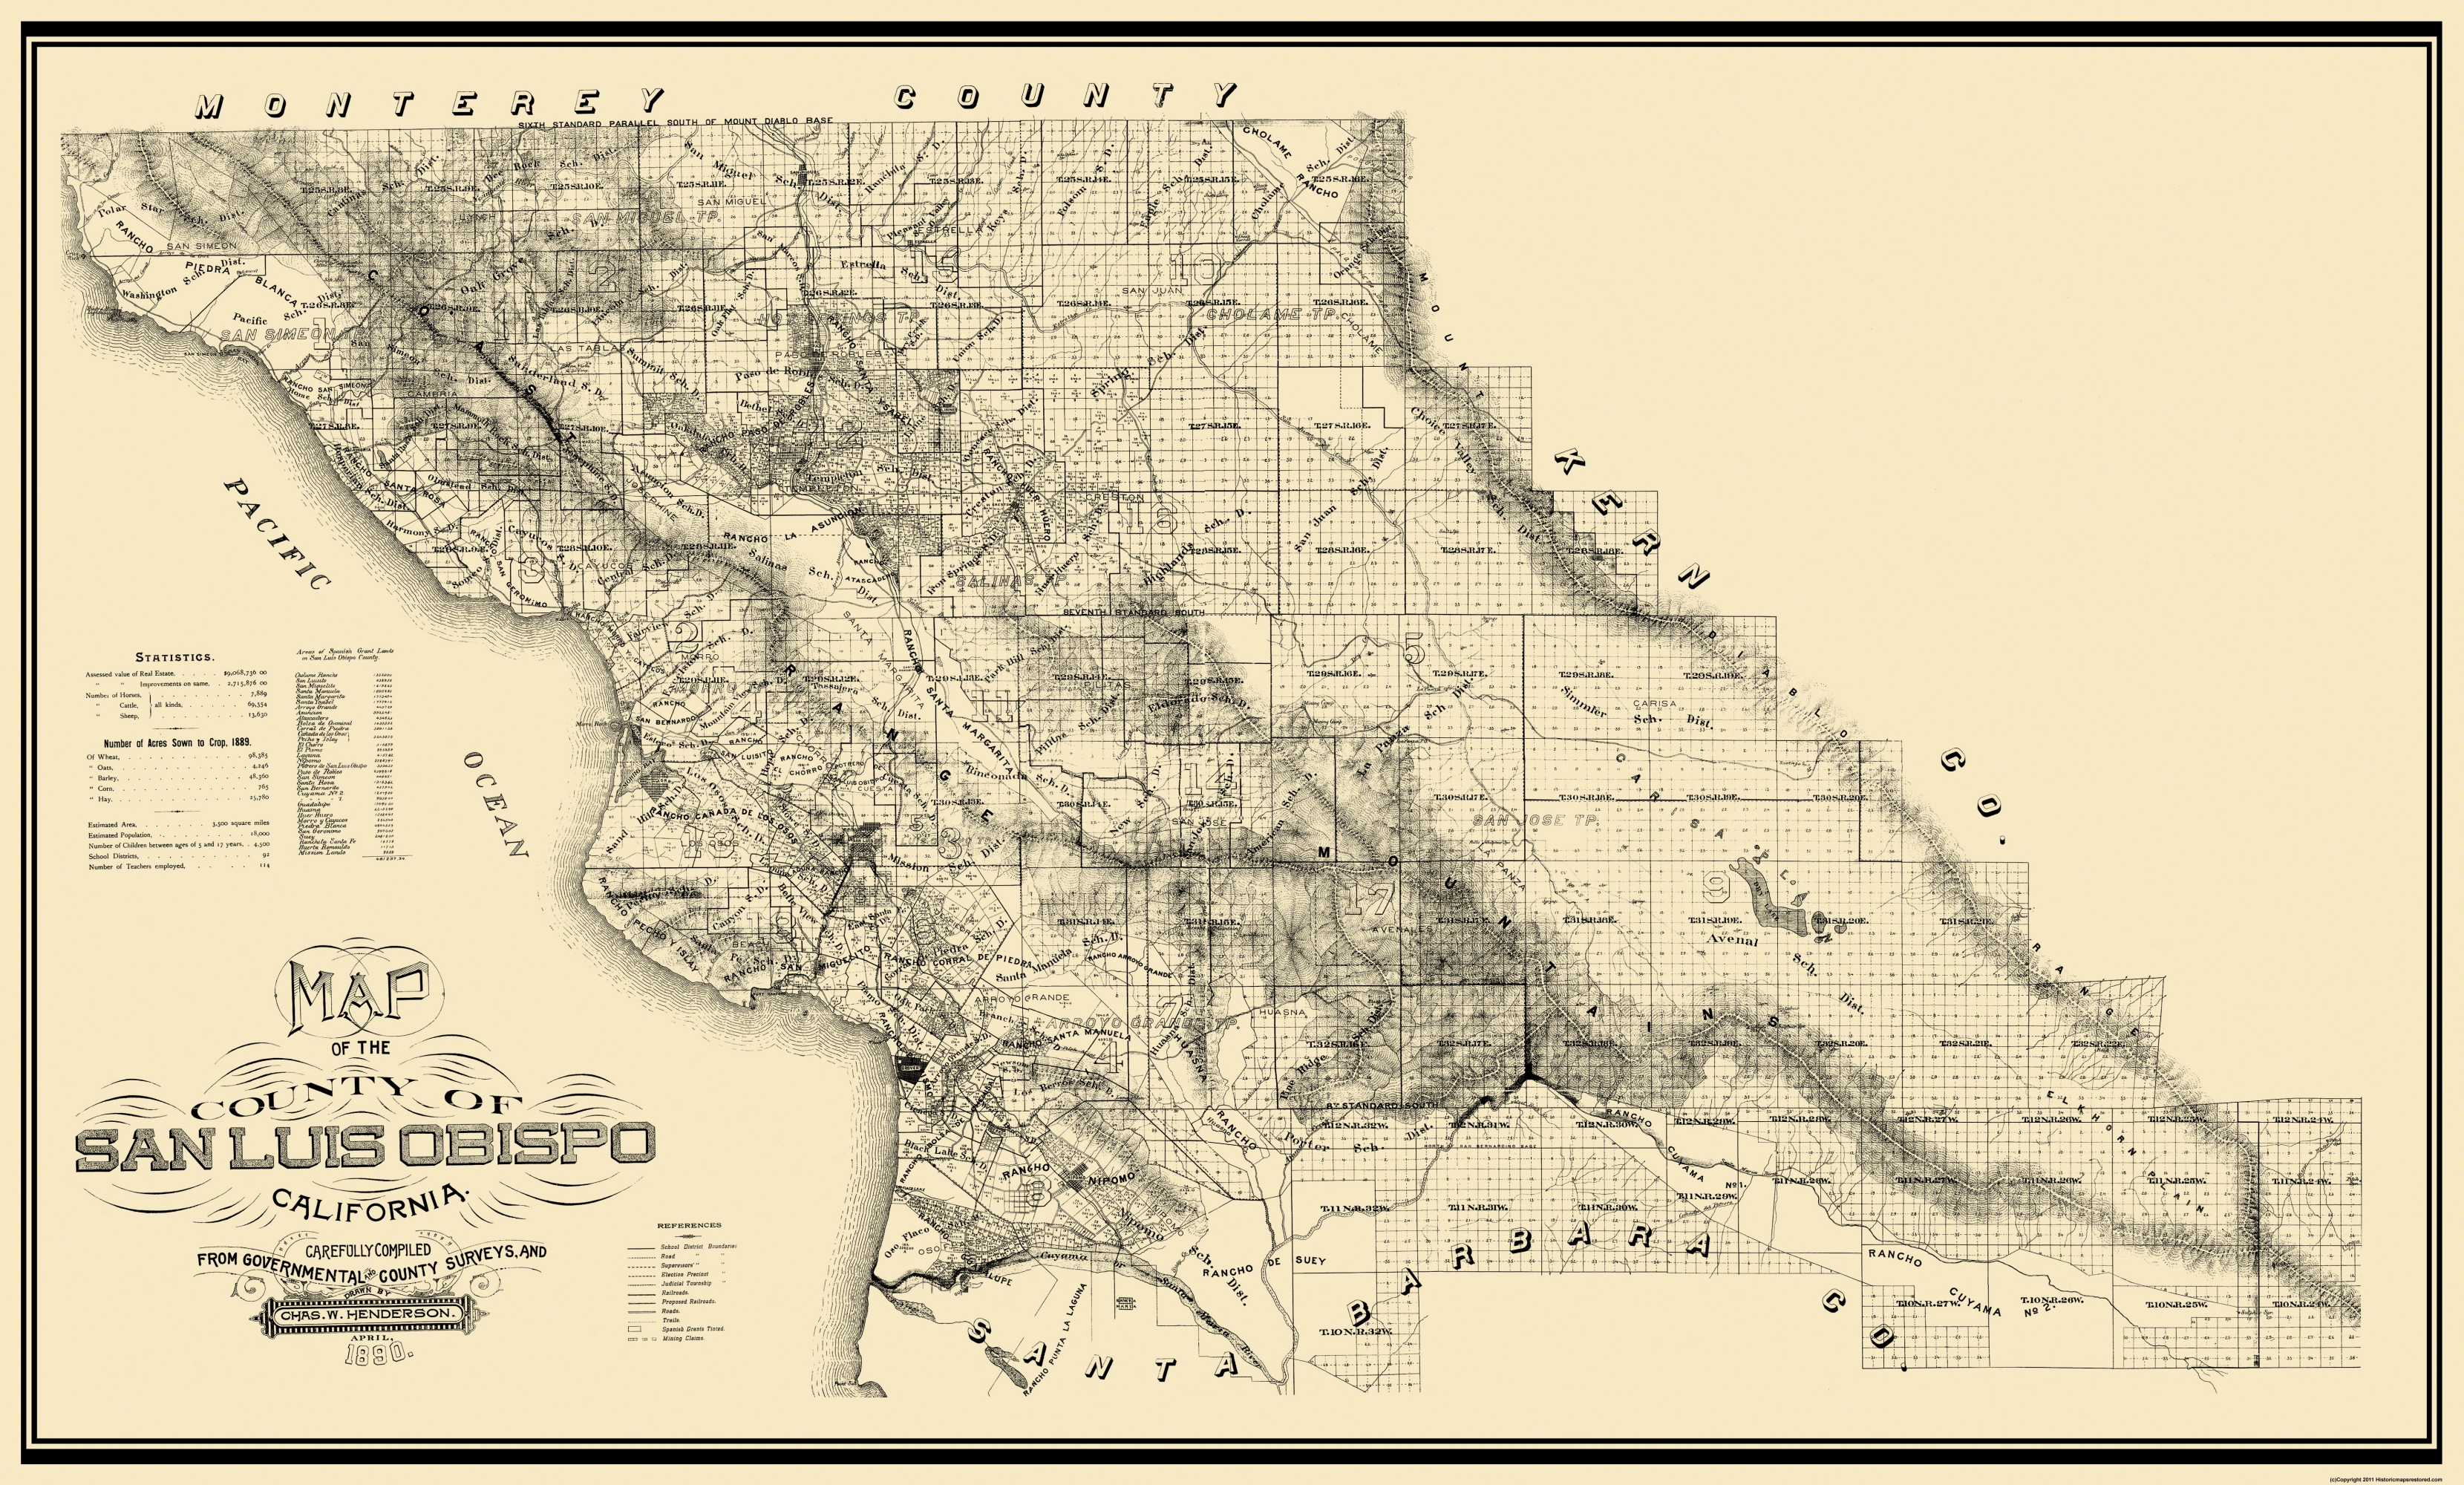 Old County Map San Luis Obispo California 1890